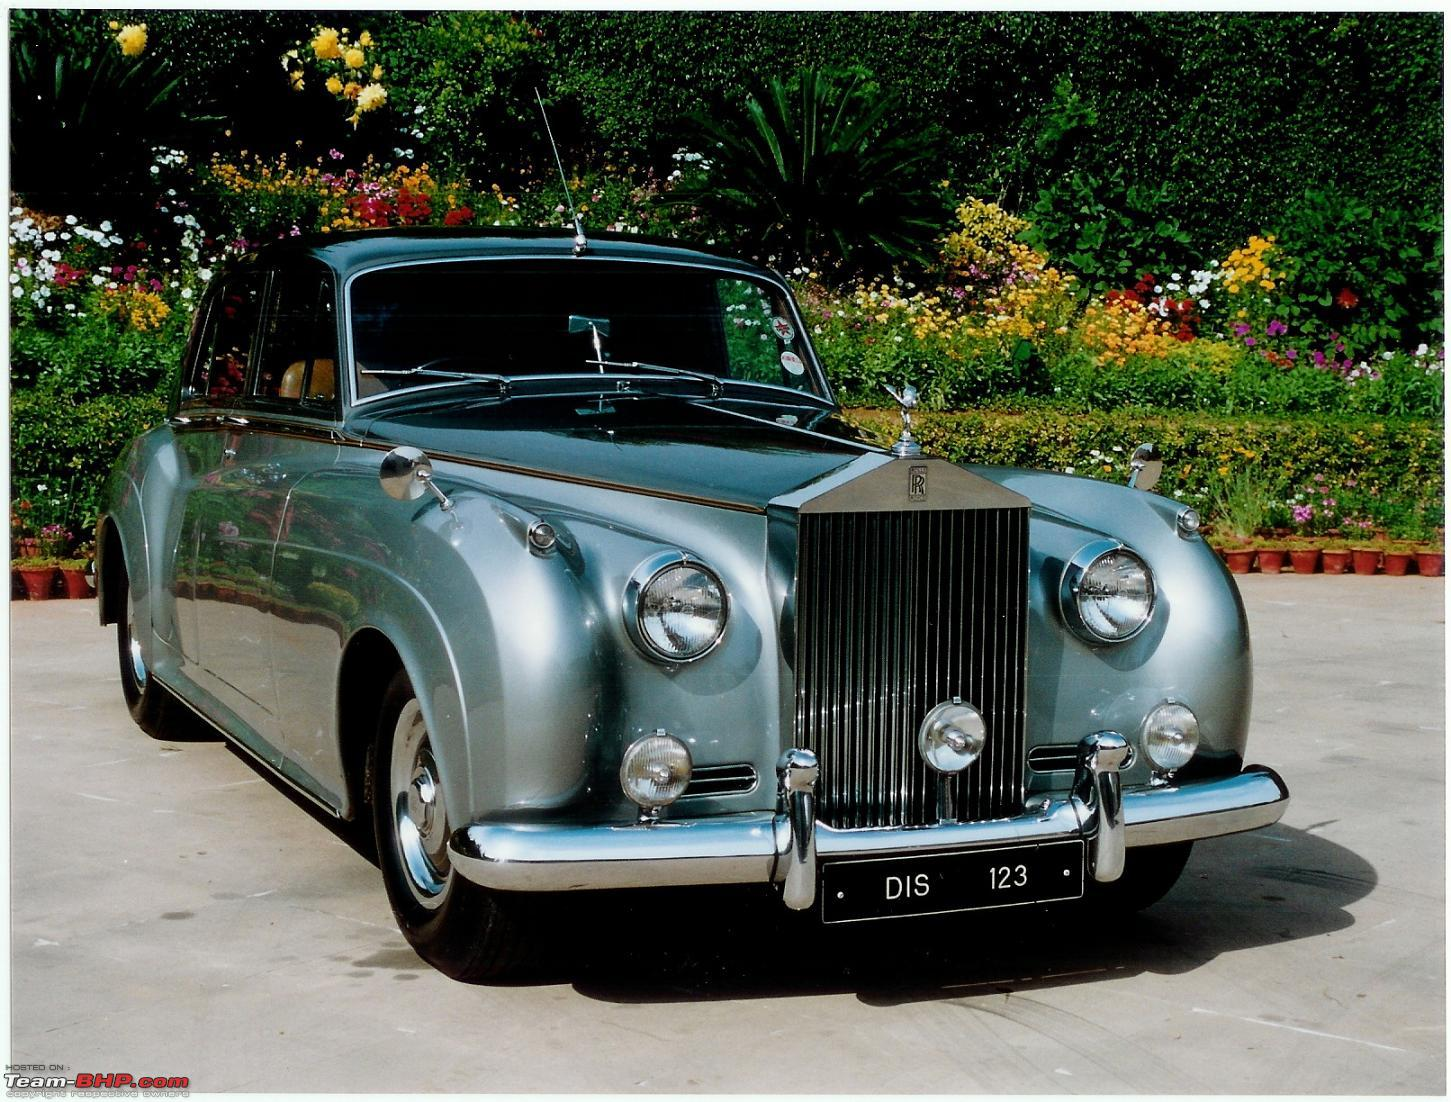 antique rolls royce rental - image antique and candle victimassist